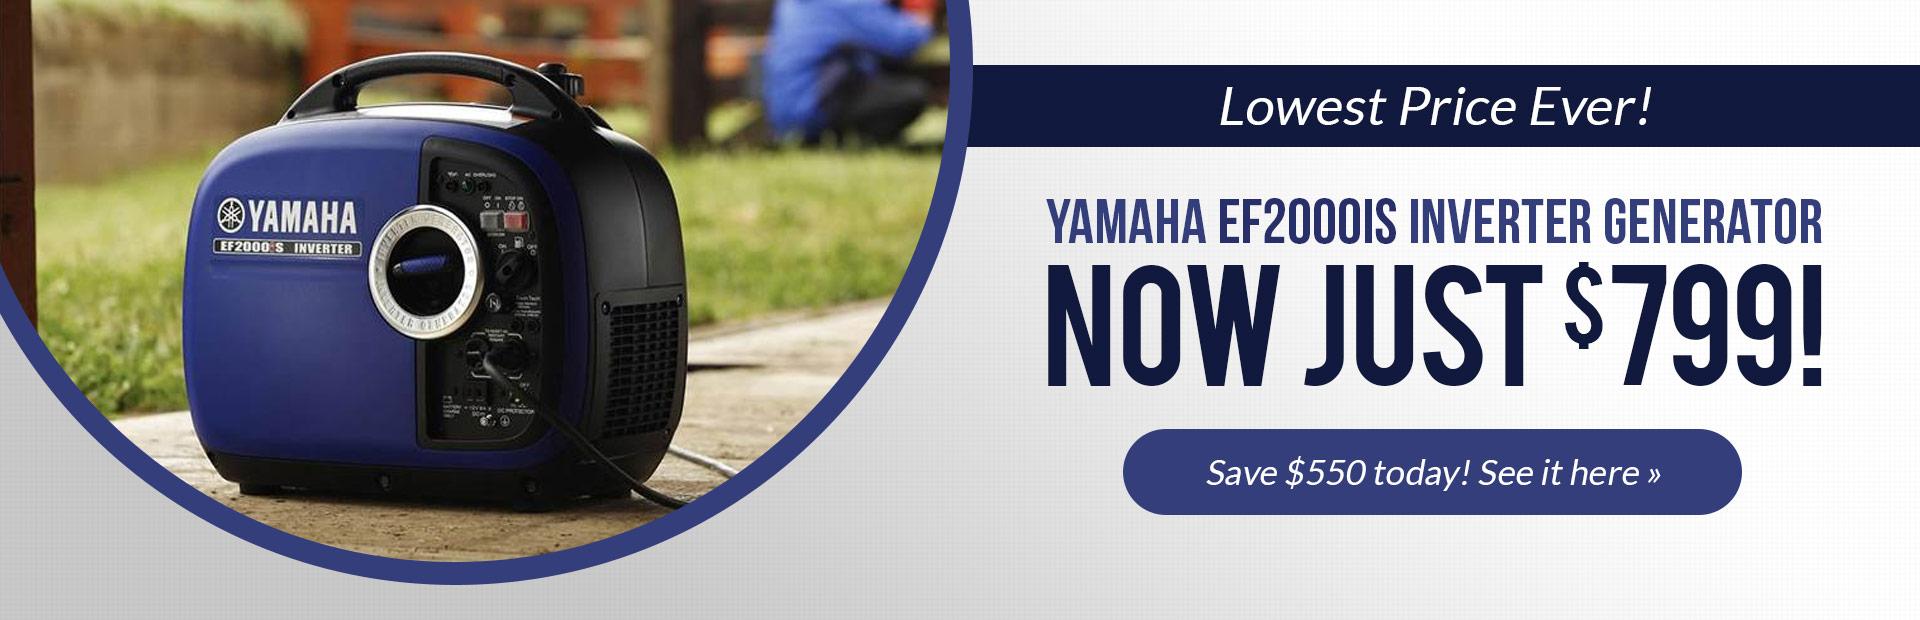 The Yamaha EF2000iS inverter generator is now just $799!